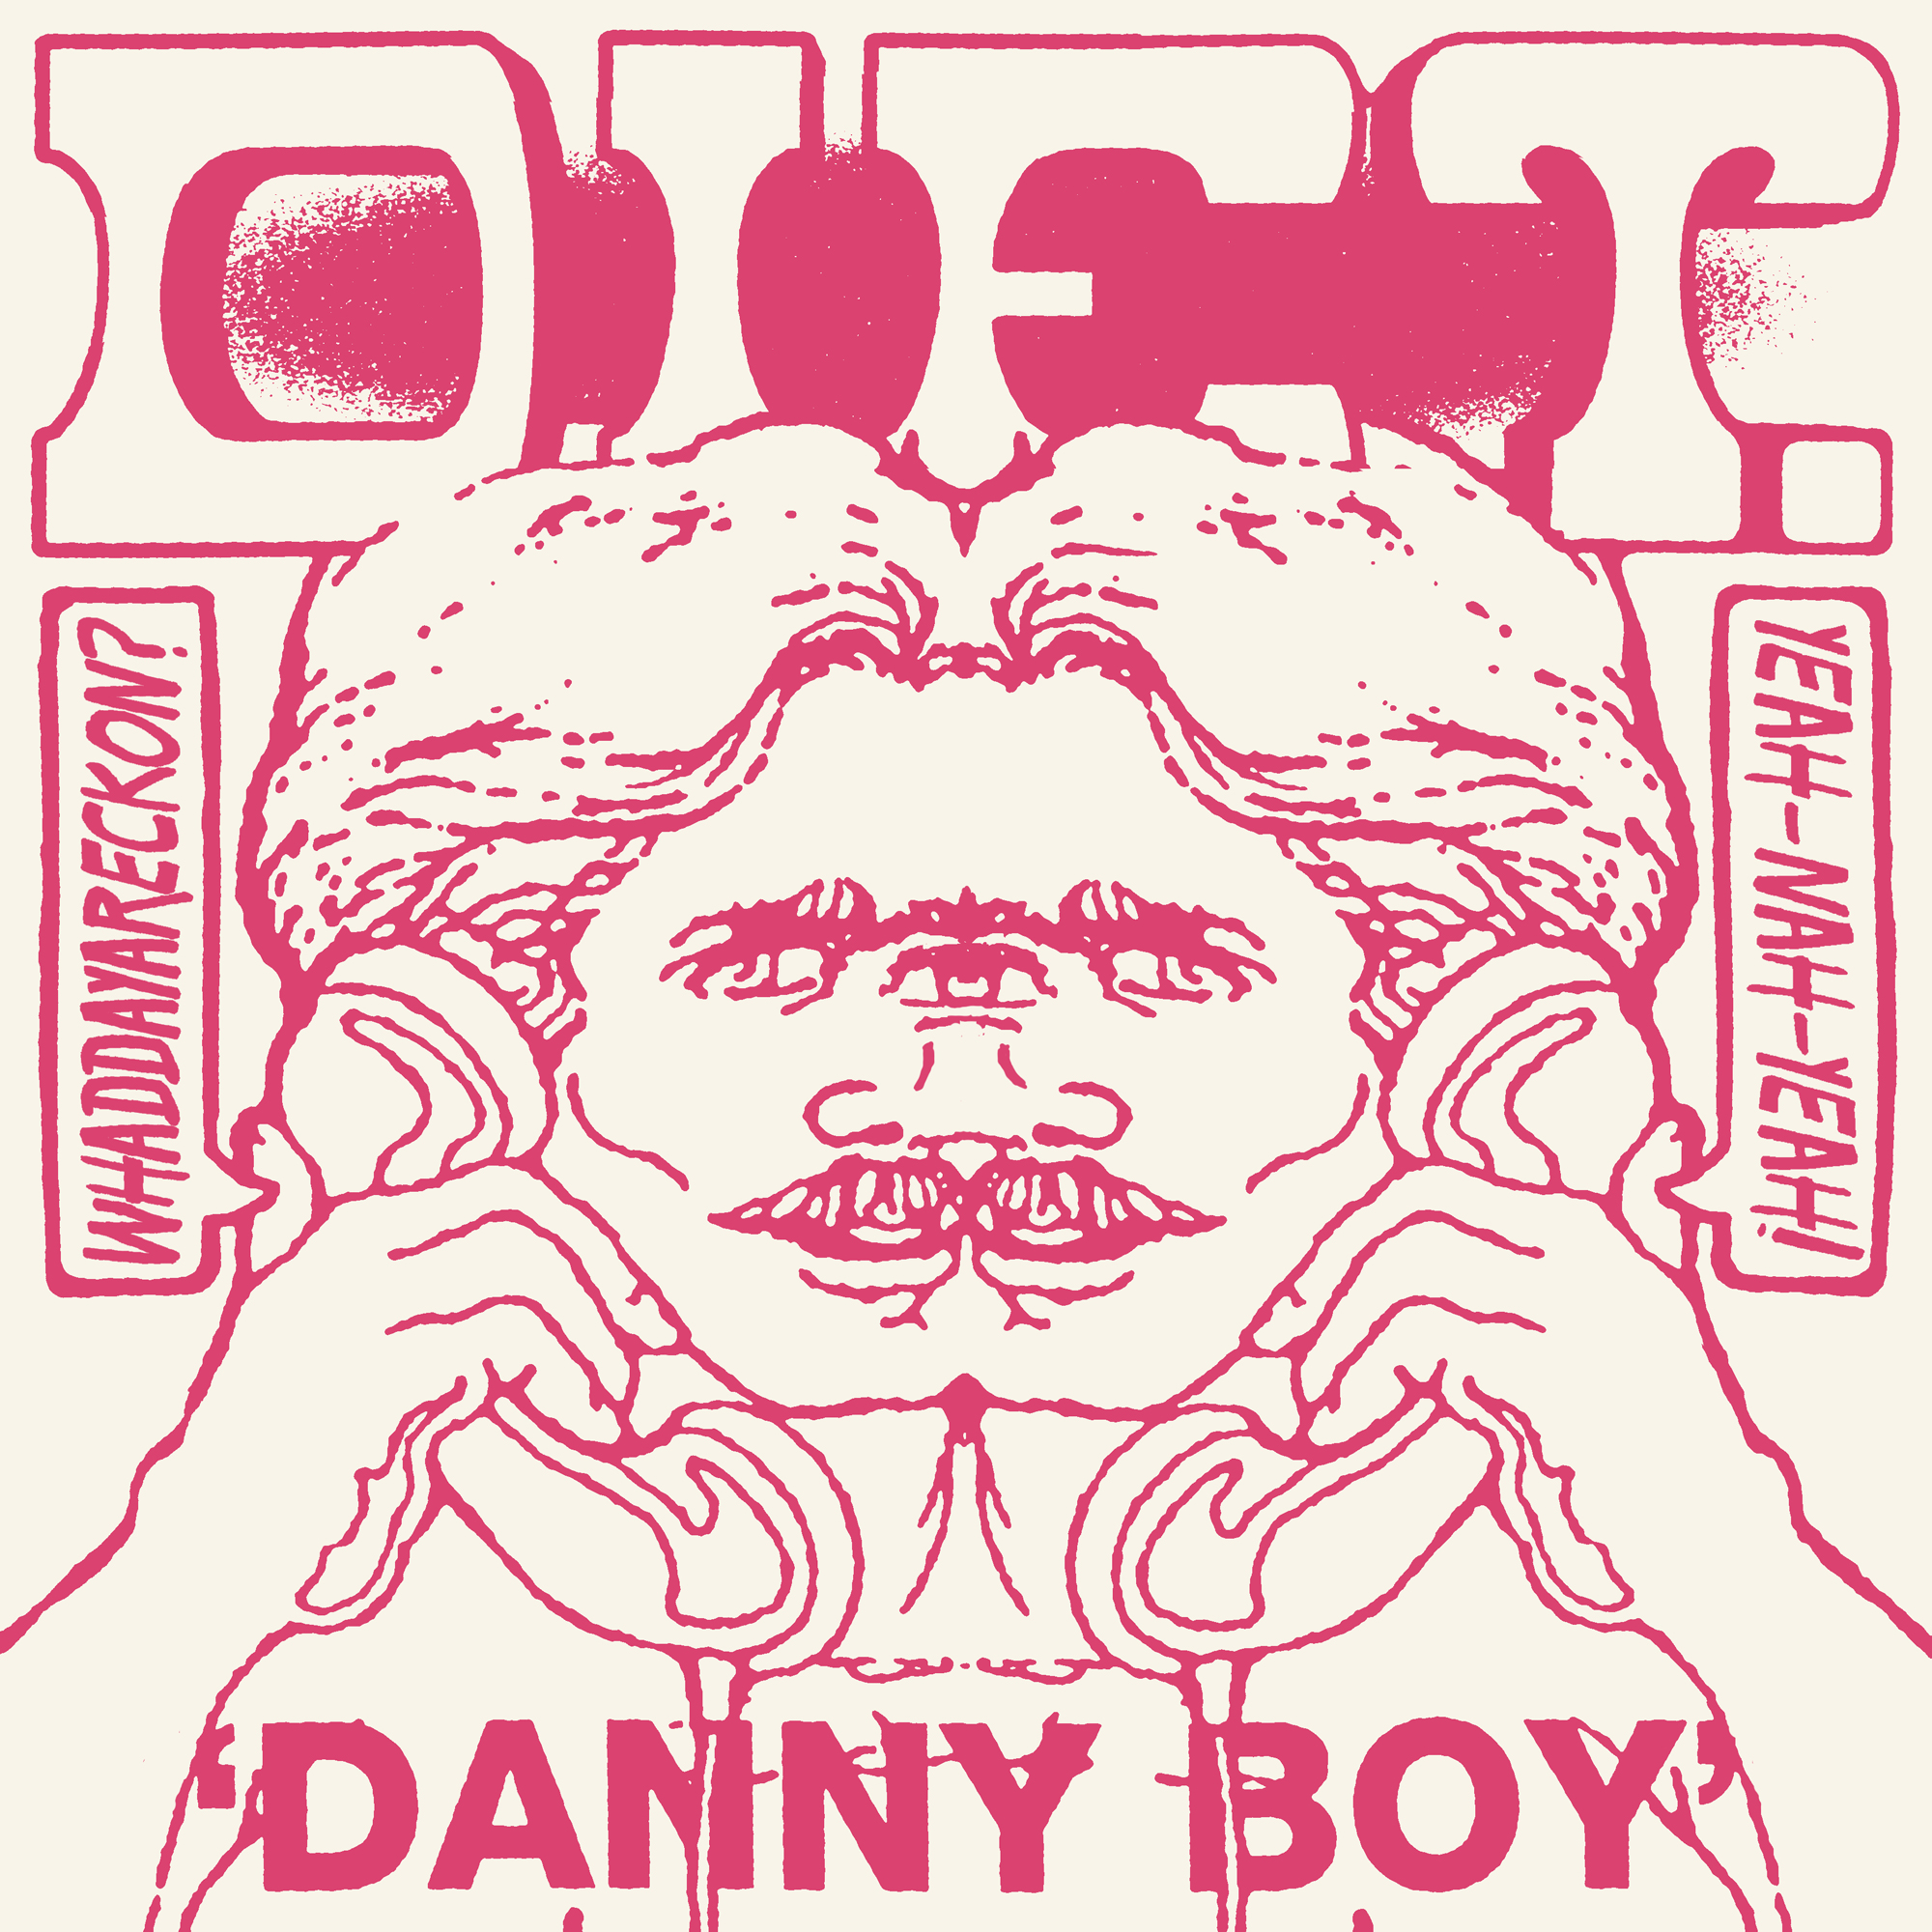 DIET-Danny-Boy-Single-Artwork-Web.jpg